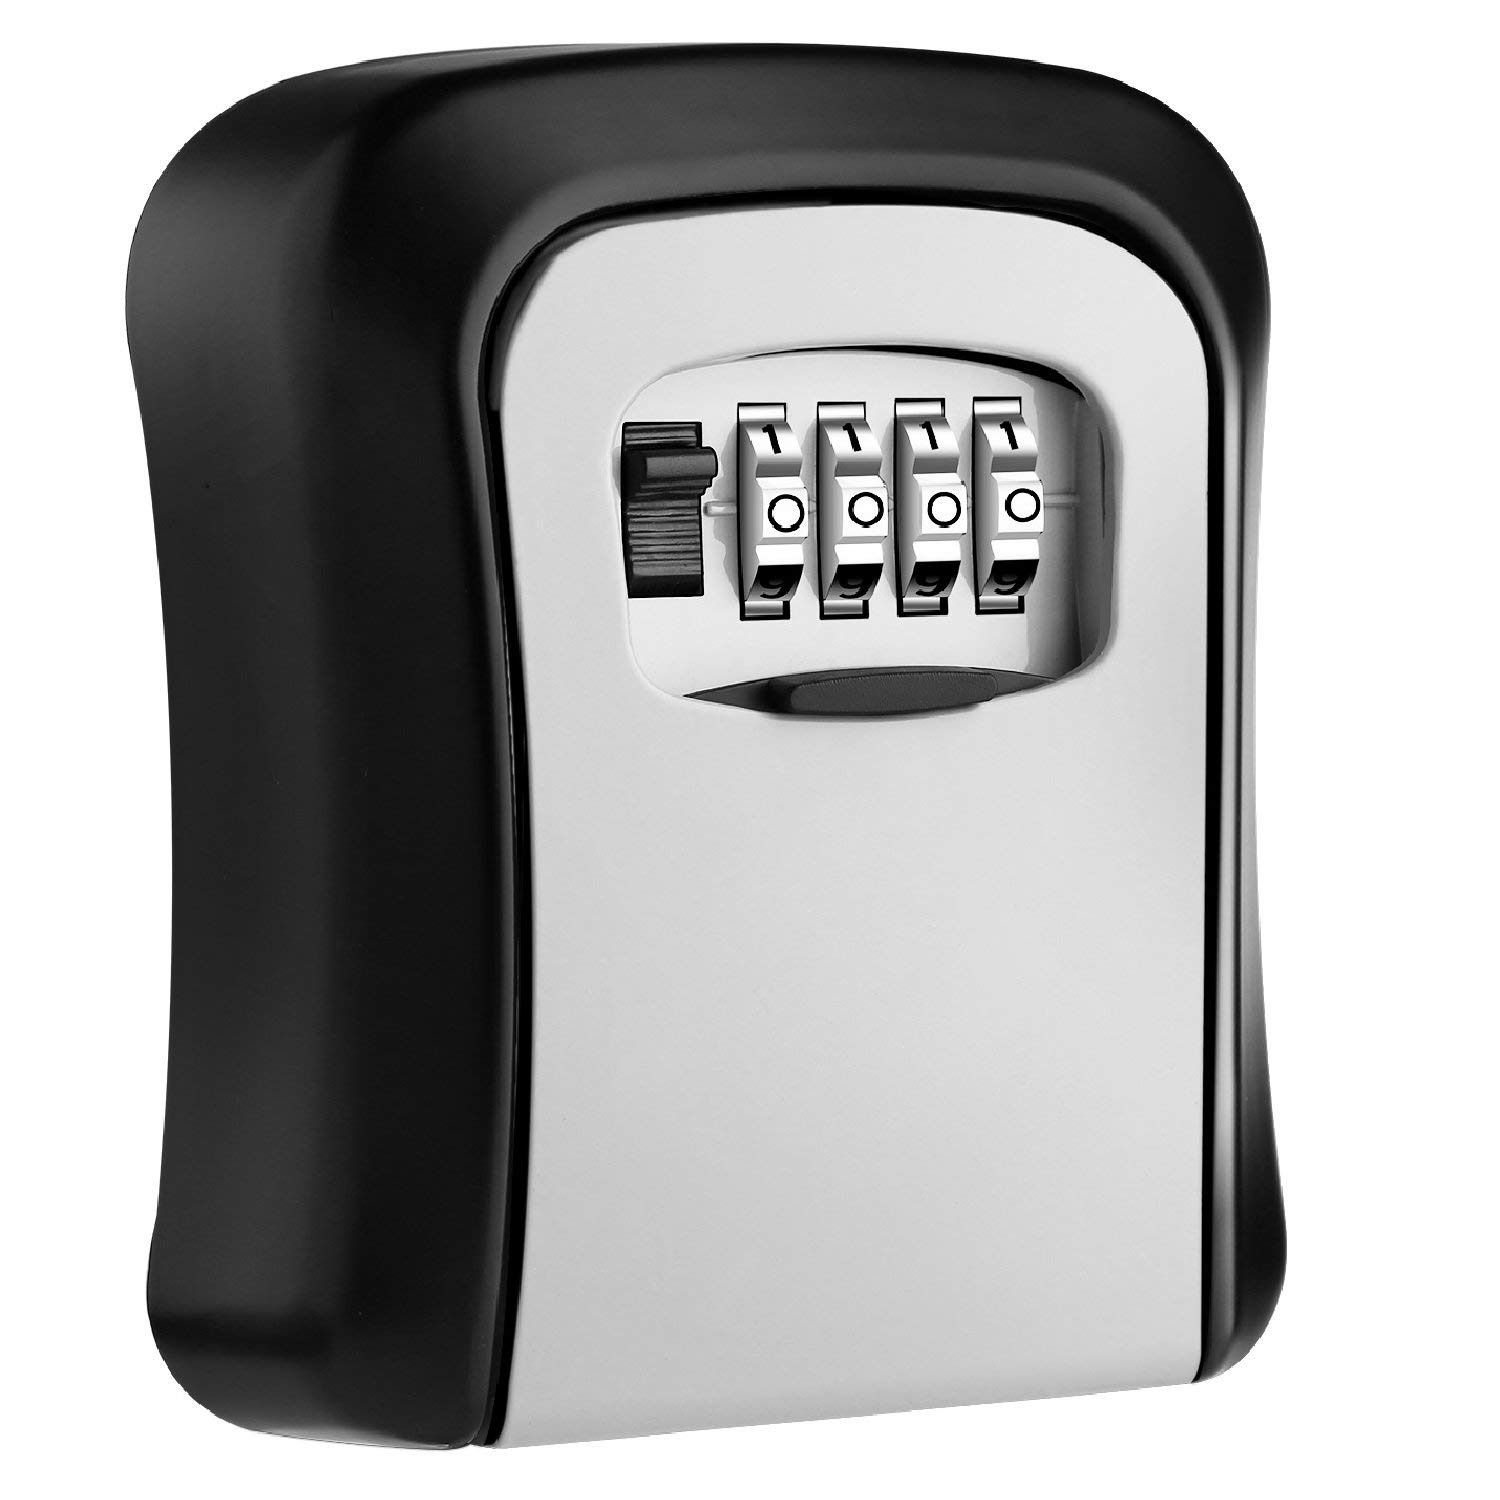 Key Lock Box Wall Mounted Aluminum Alloy Key Safe Box Weatherproof 4 Digit Combination Key Storage Lock Box Indoor Outdoor Packing Of Nominated Brand Kleidung & Accessoires